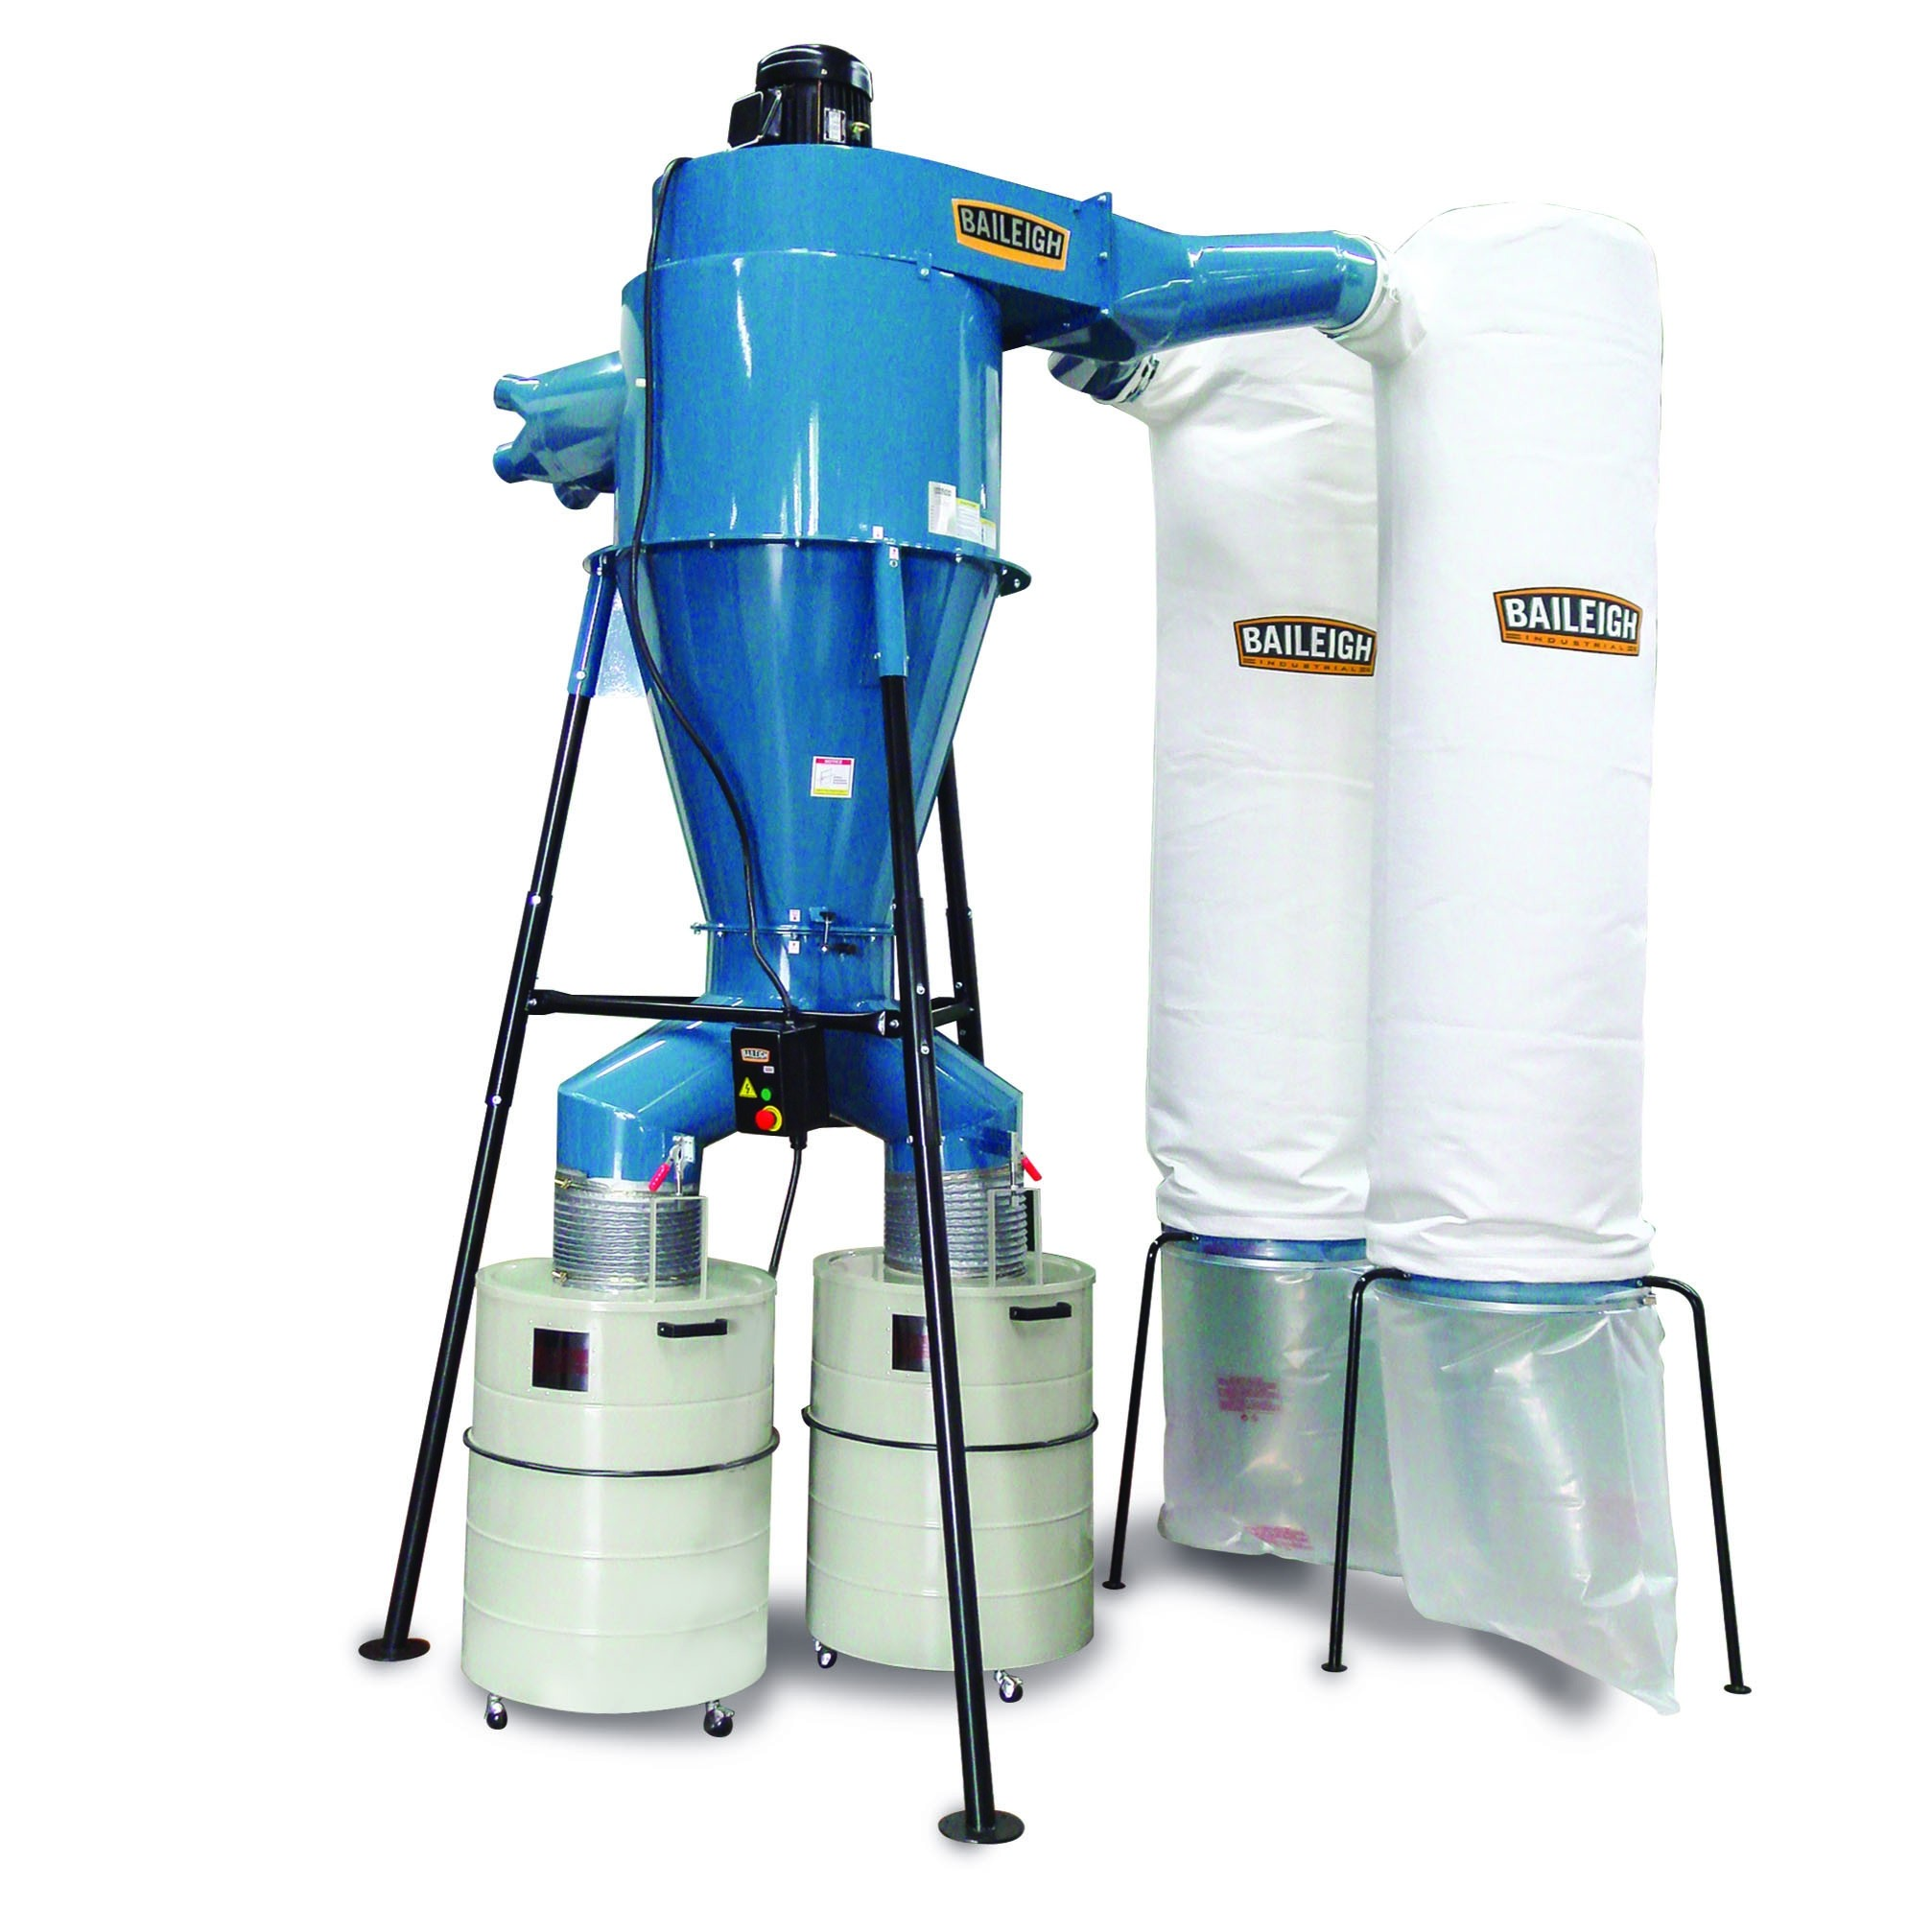 Cyclone Dust Extractor Large Dust Collector Baileigh Industrial Baileigh Industrial